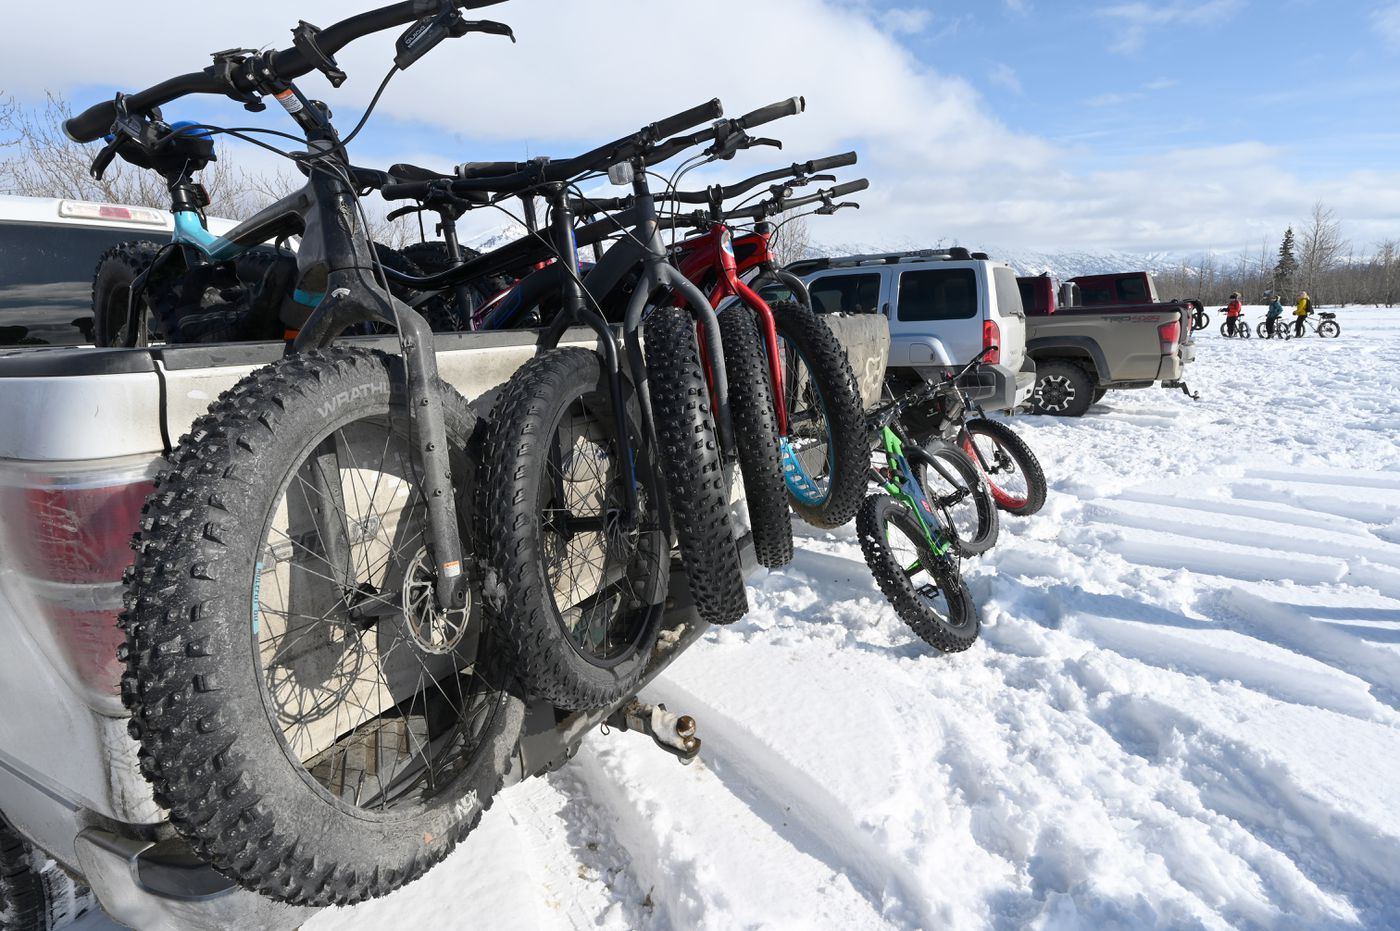 Bikes are ready to be offloaded in the Knik Glacier Tours parking area. This is beginning of the 10-mile trail to the Knik Glacier Saturday, March 27, 2021. (Anne Raup / ADN)